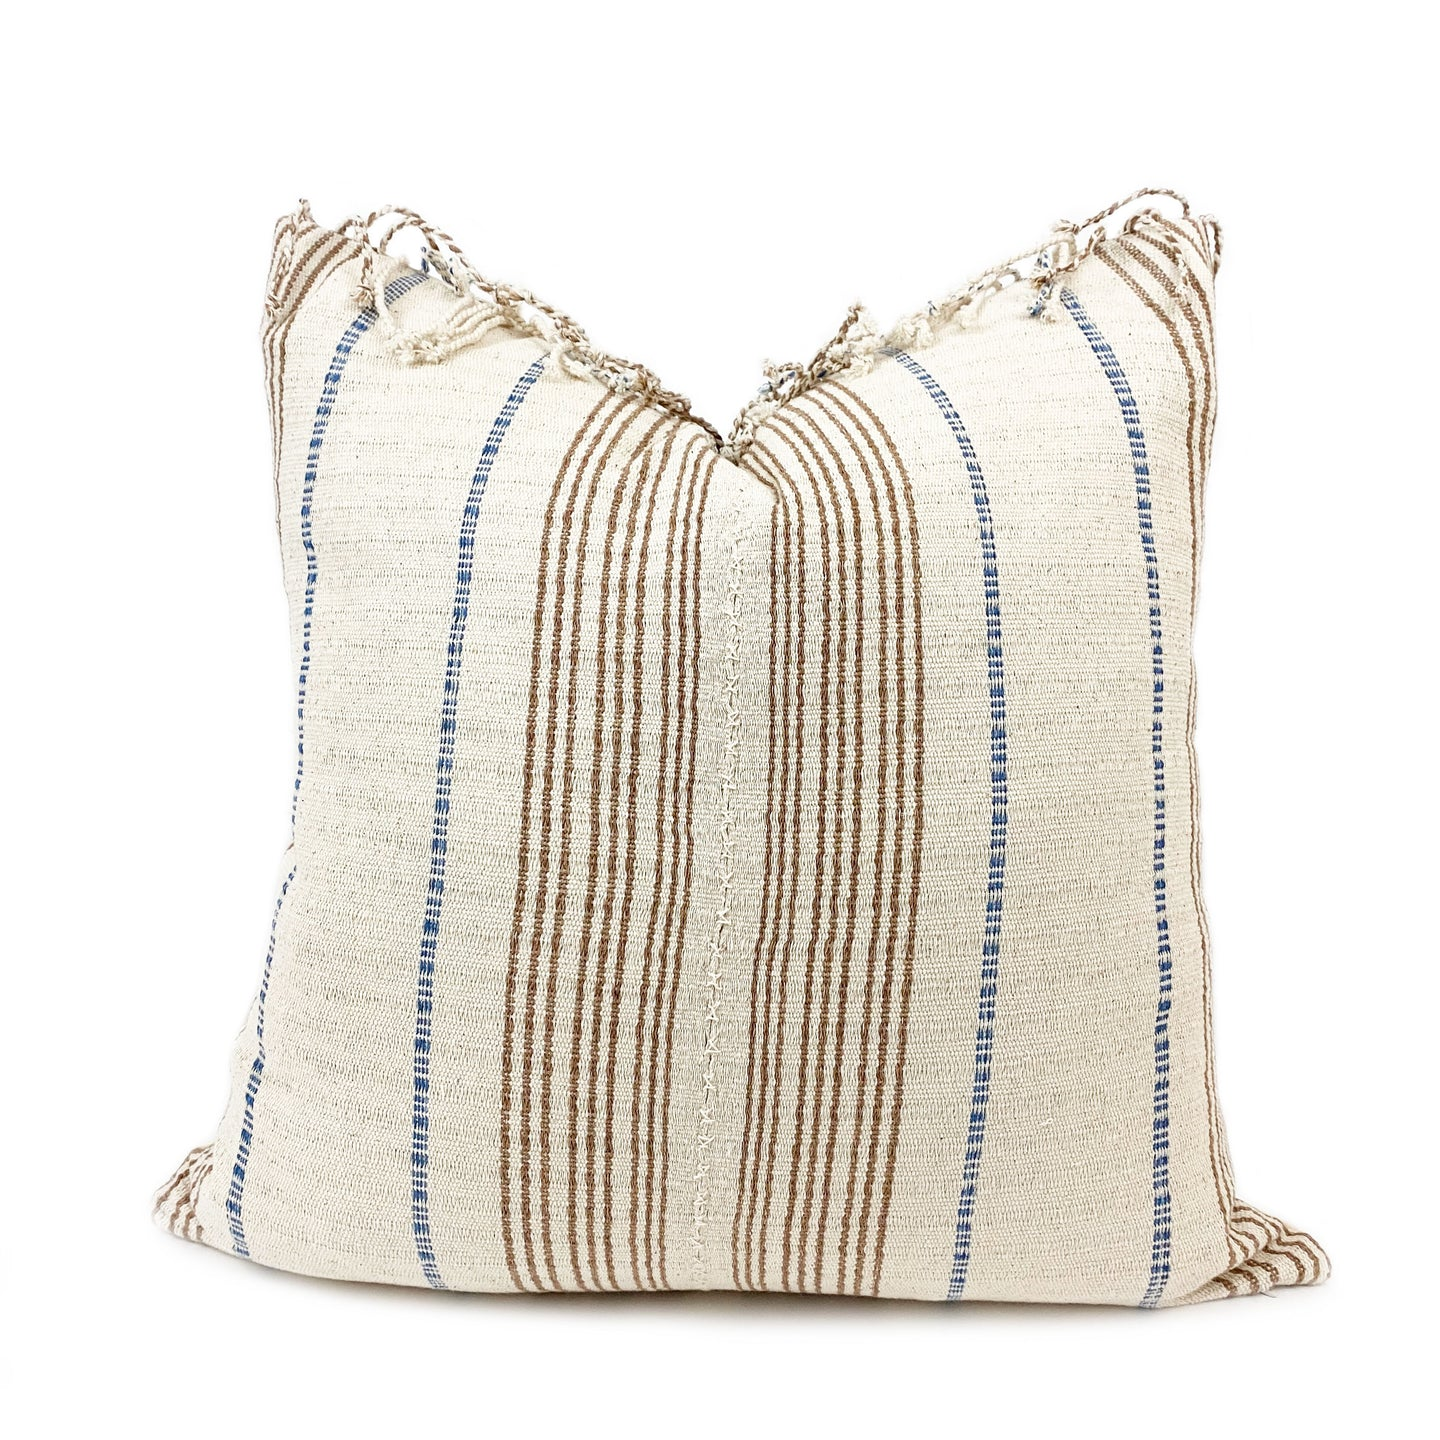 Anais Handwoven Throw Pillow - H+E Goods Company